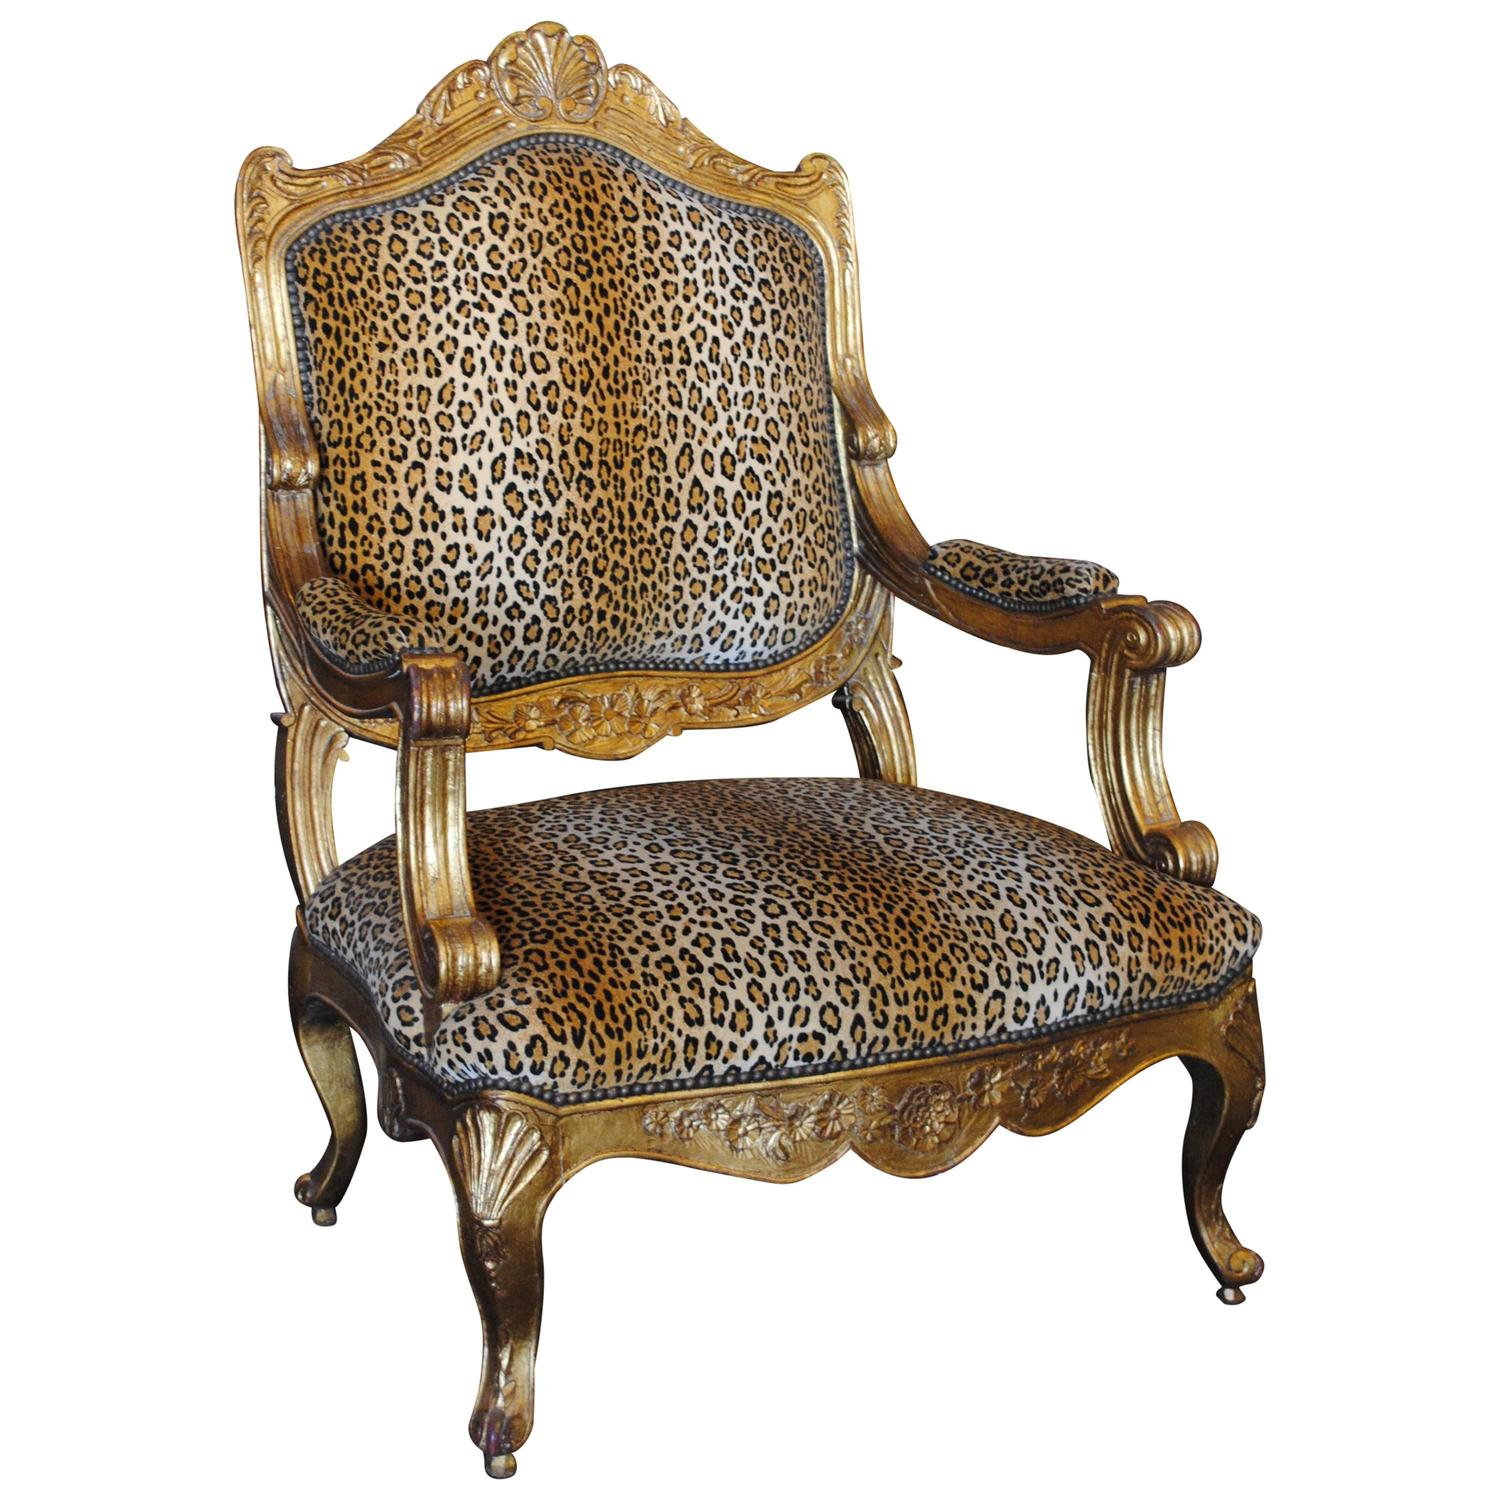 Louis Xv Style Giltwood Armchair In Leopard Print For Sale At 1stdibs